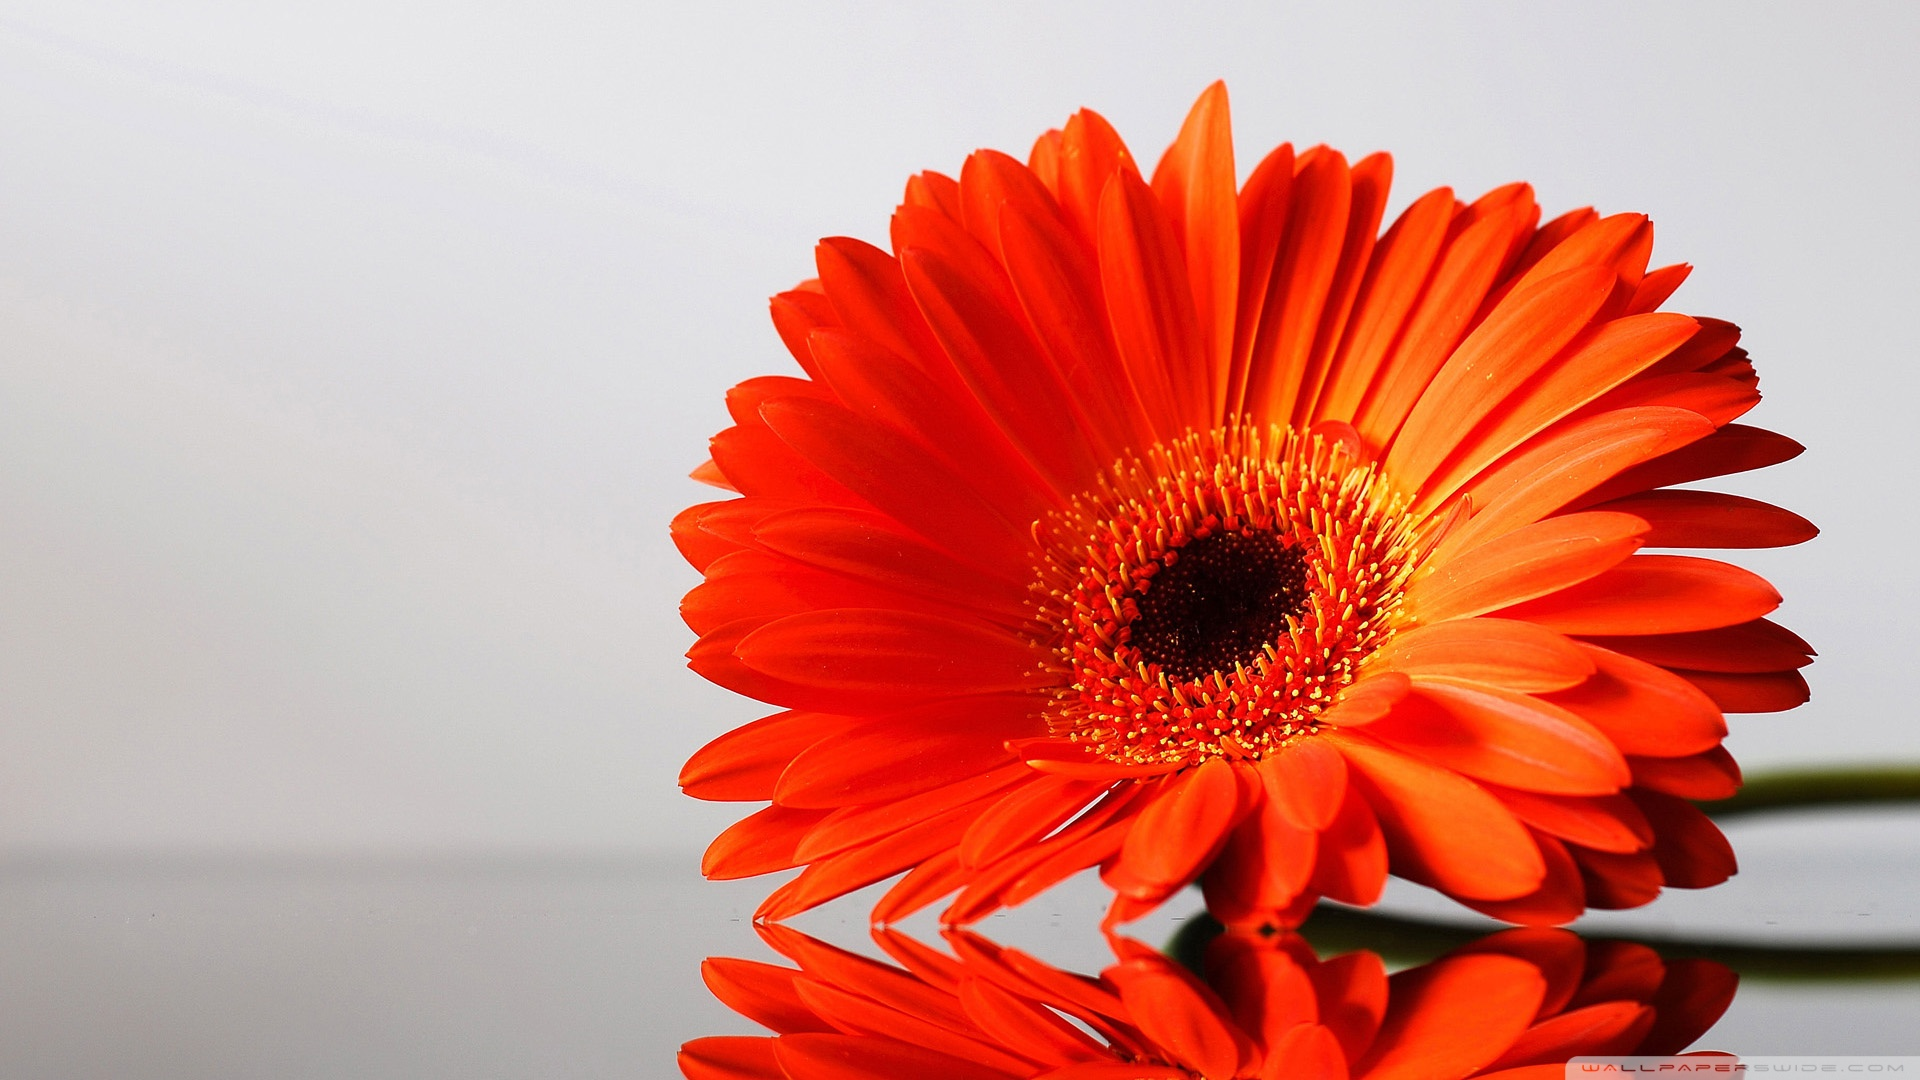 Gerbera wallpaper   832313 1920x1080